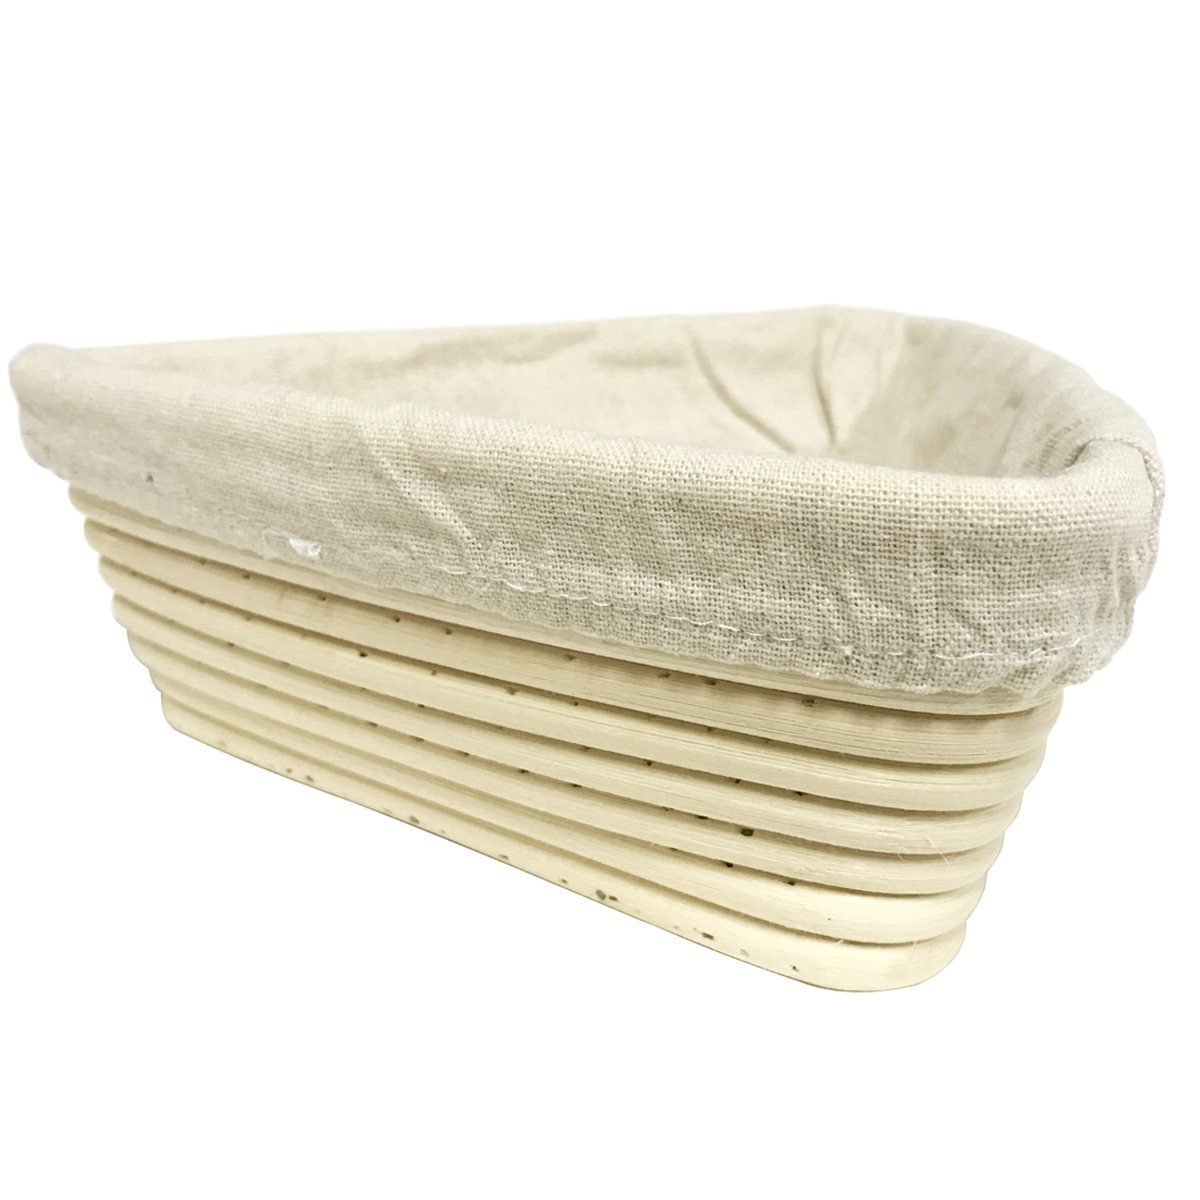 Lanling 6.3 Inch European Style Triangle Shaped Banneton Brotform Bread Dough Proofing Rising Rattan Basket with Linen Liner Cloth